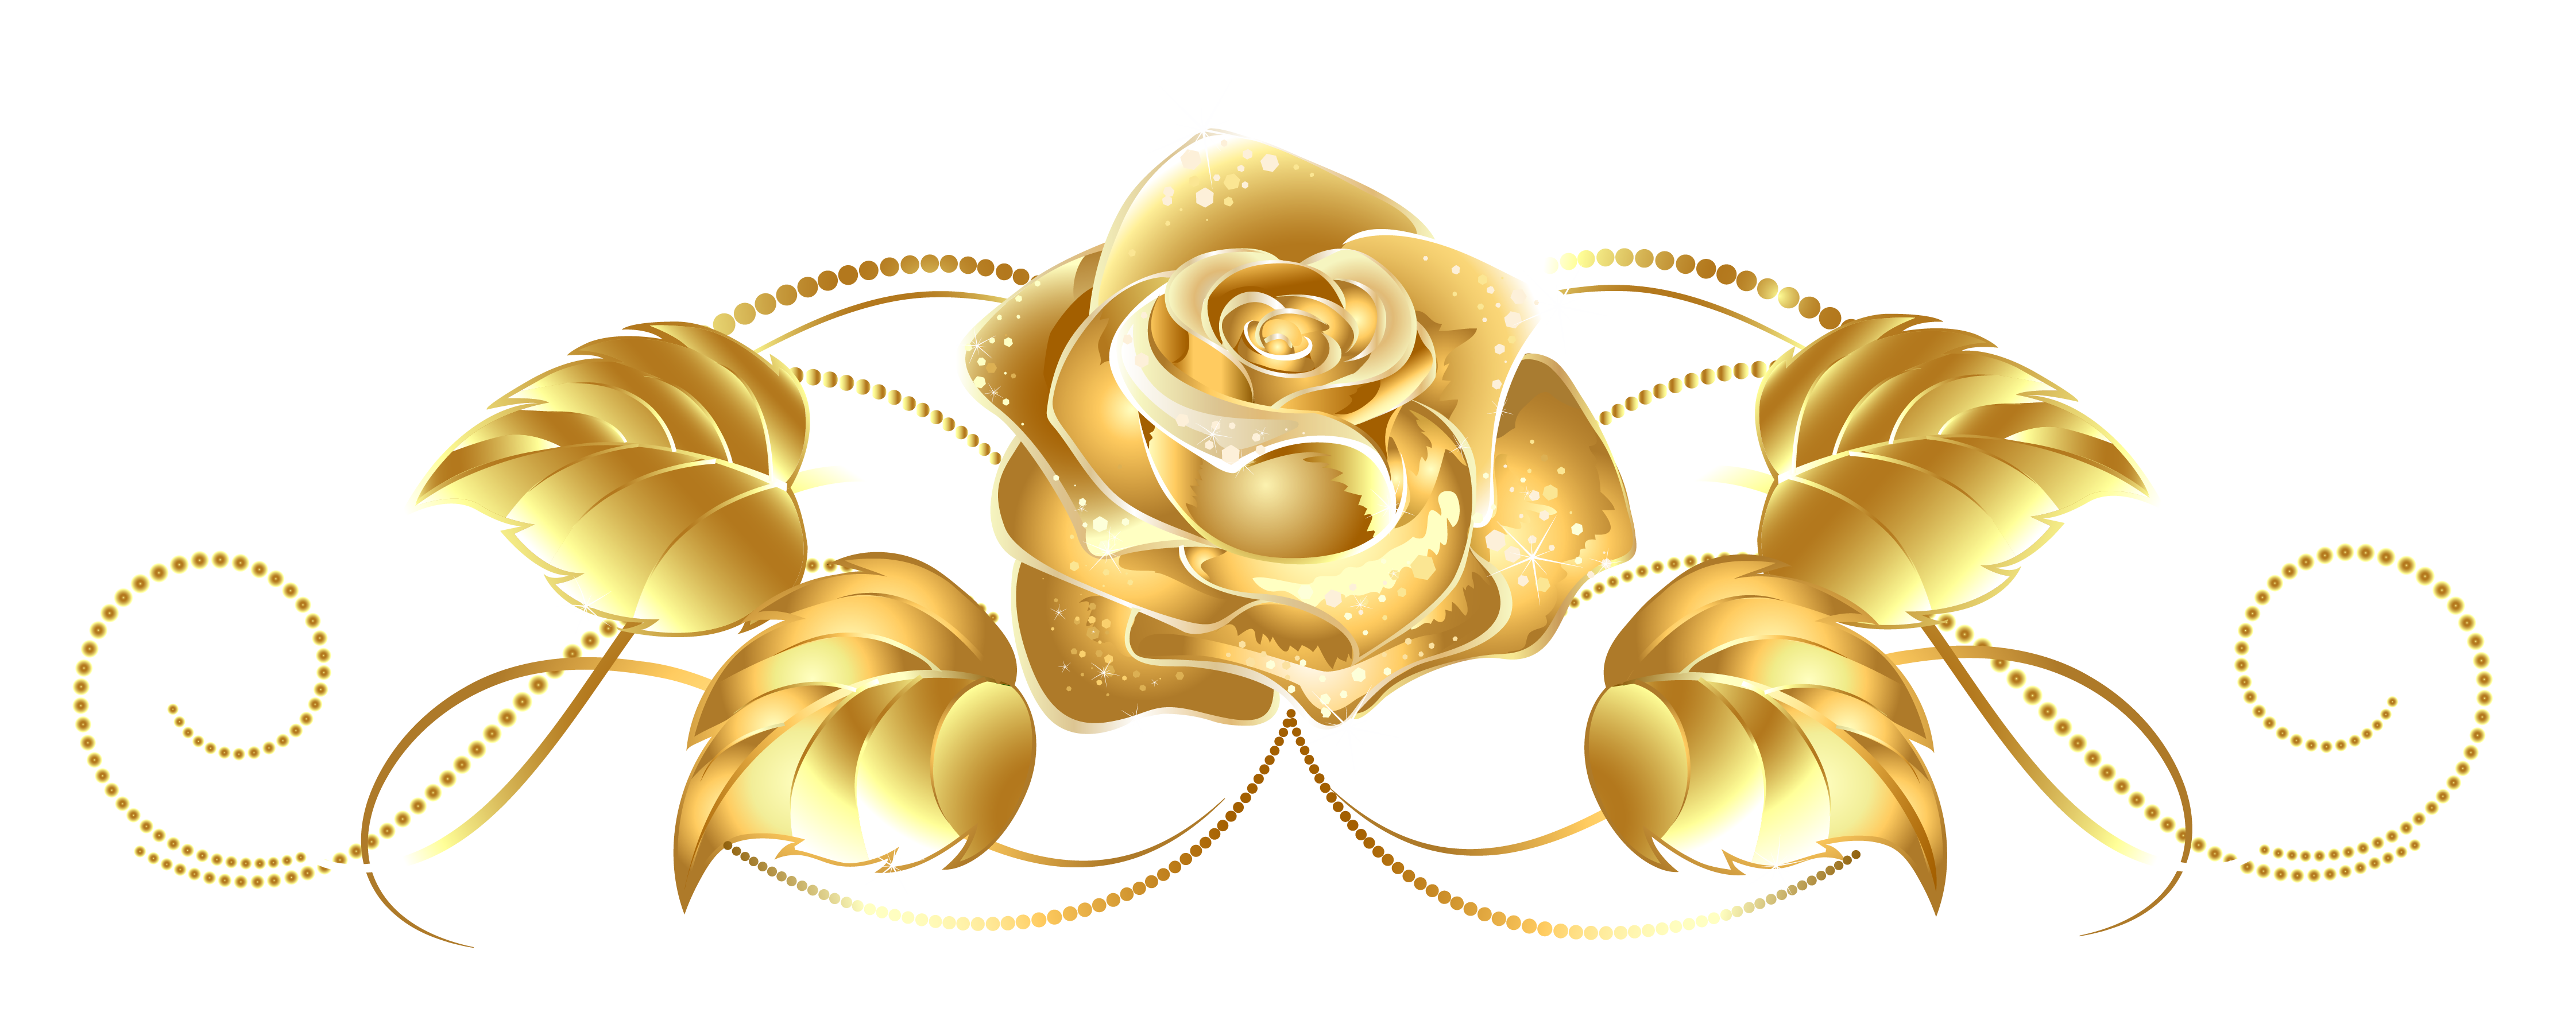 Star dust clipart picture download Beautiful Gold Rose Decor PNG Image - PurePNG | Free transparent CC0 ... picture download